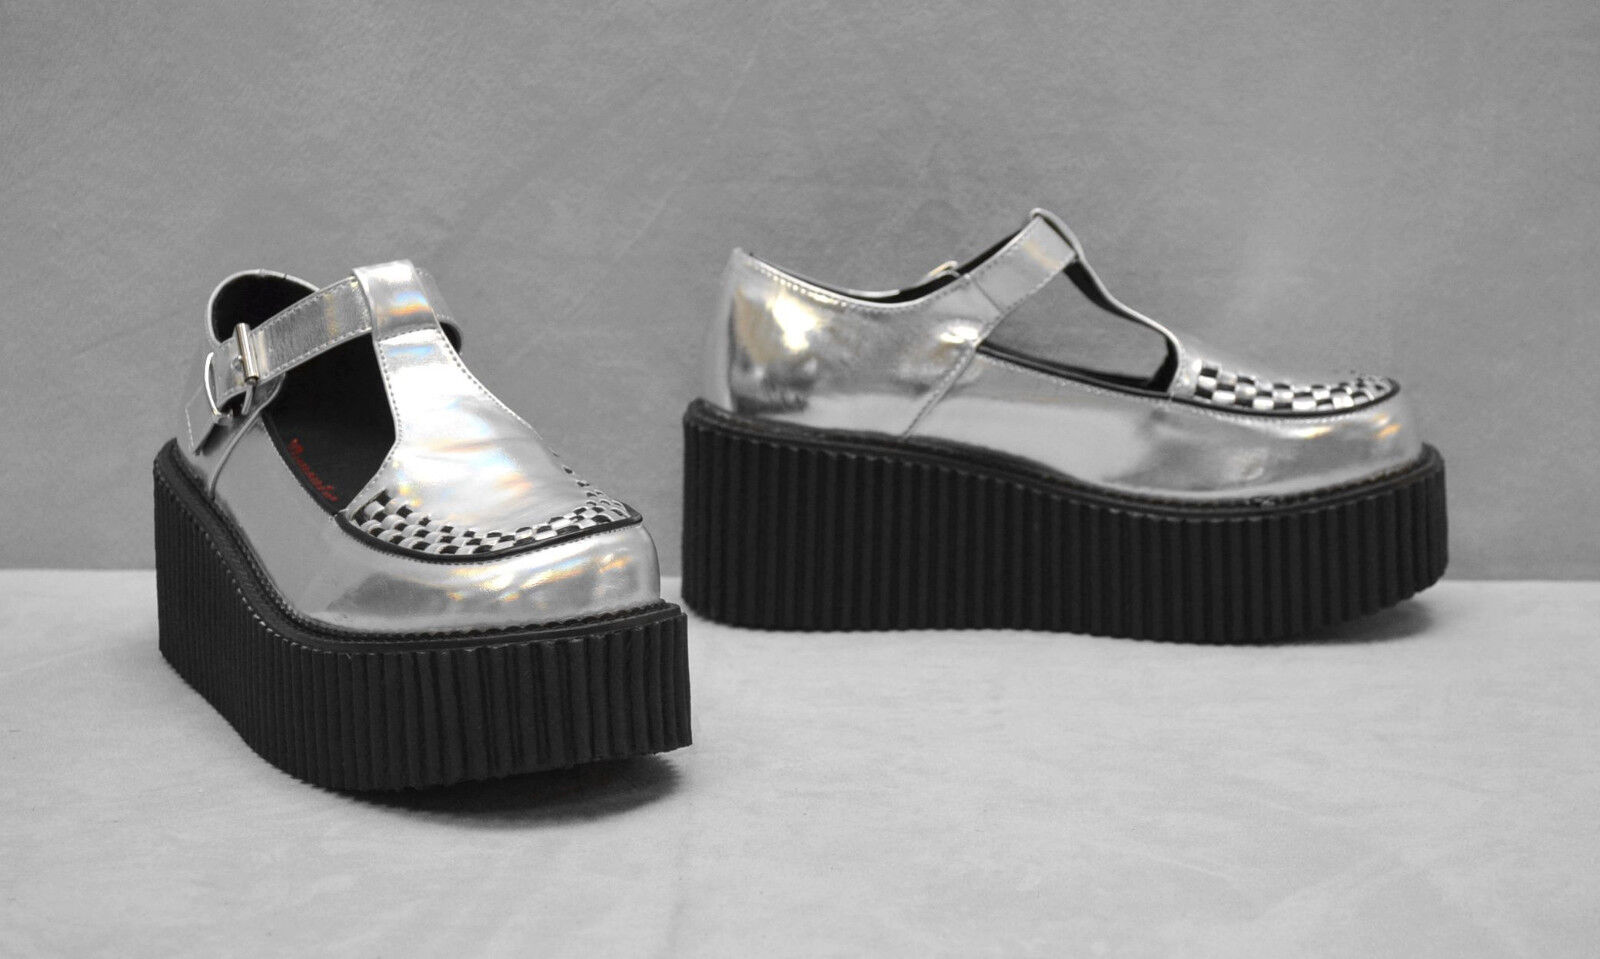 A8 NEW DEMONIA Creeper 214 argent Hologram T Strap Platform chaussures Taille US 8.5